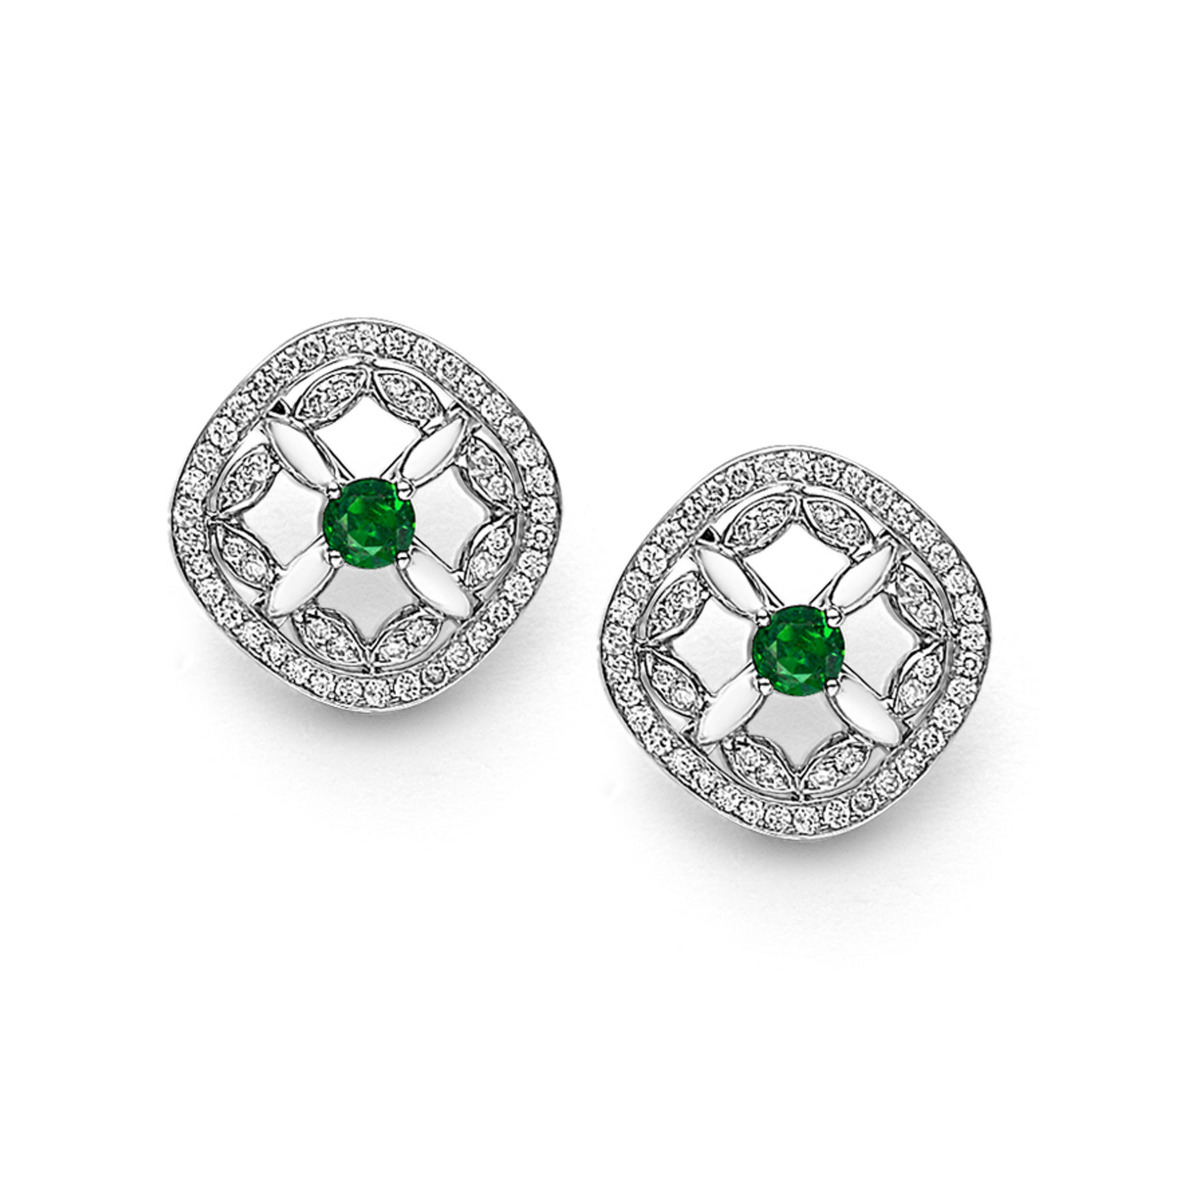 Petal Collection 18ct White Gold Petal Diamond and Emerald Set Earrings